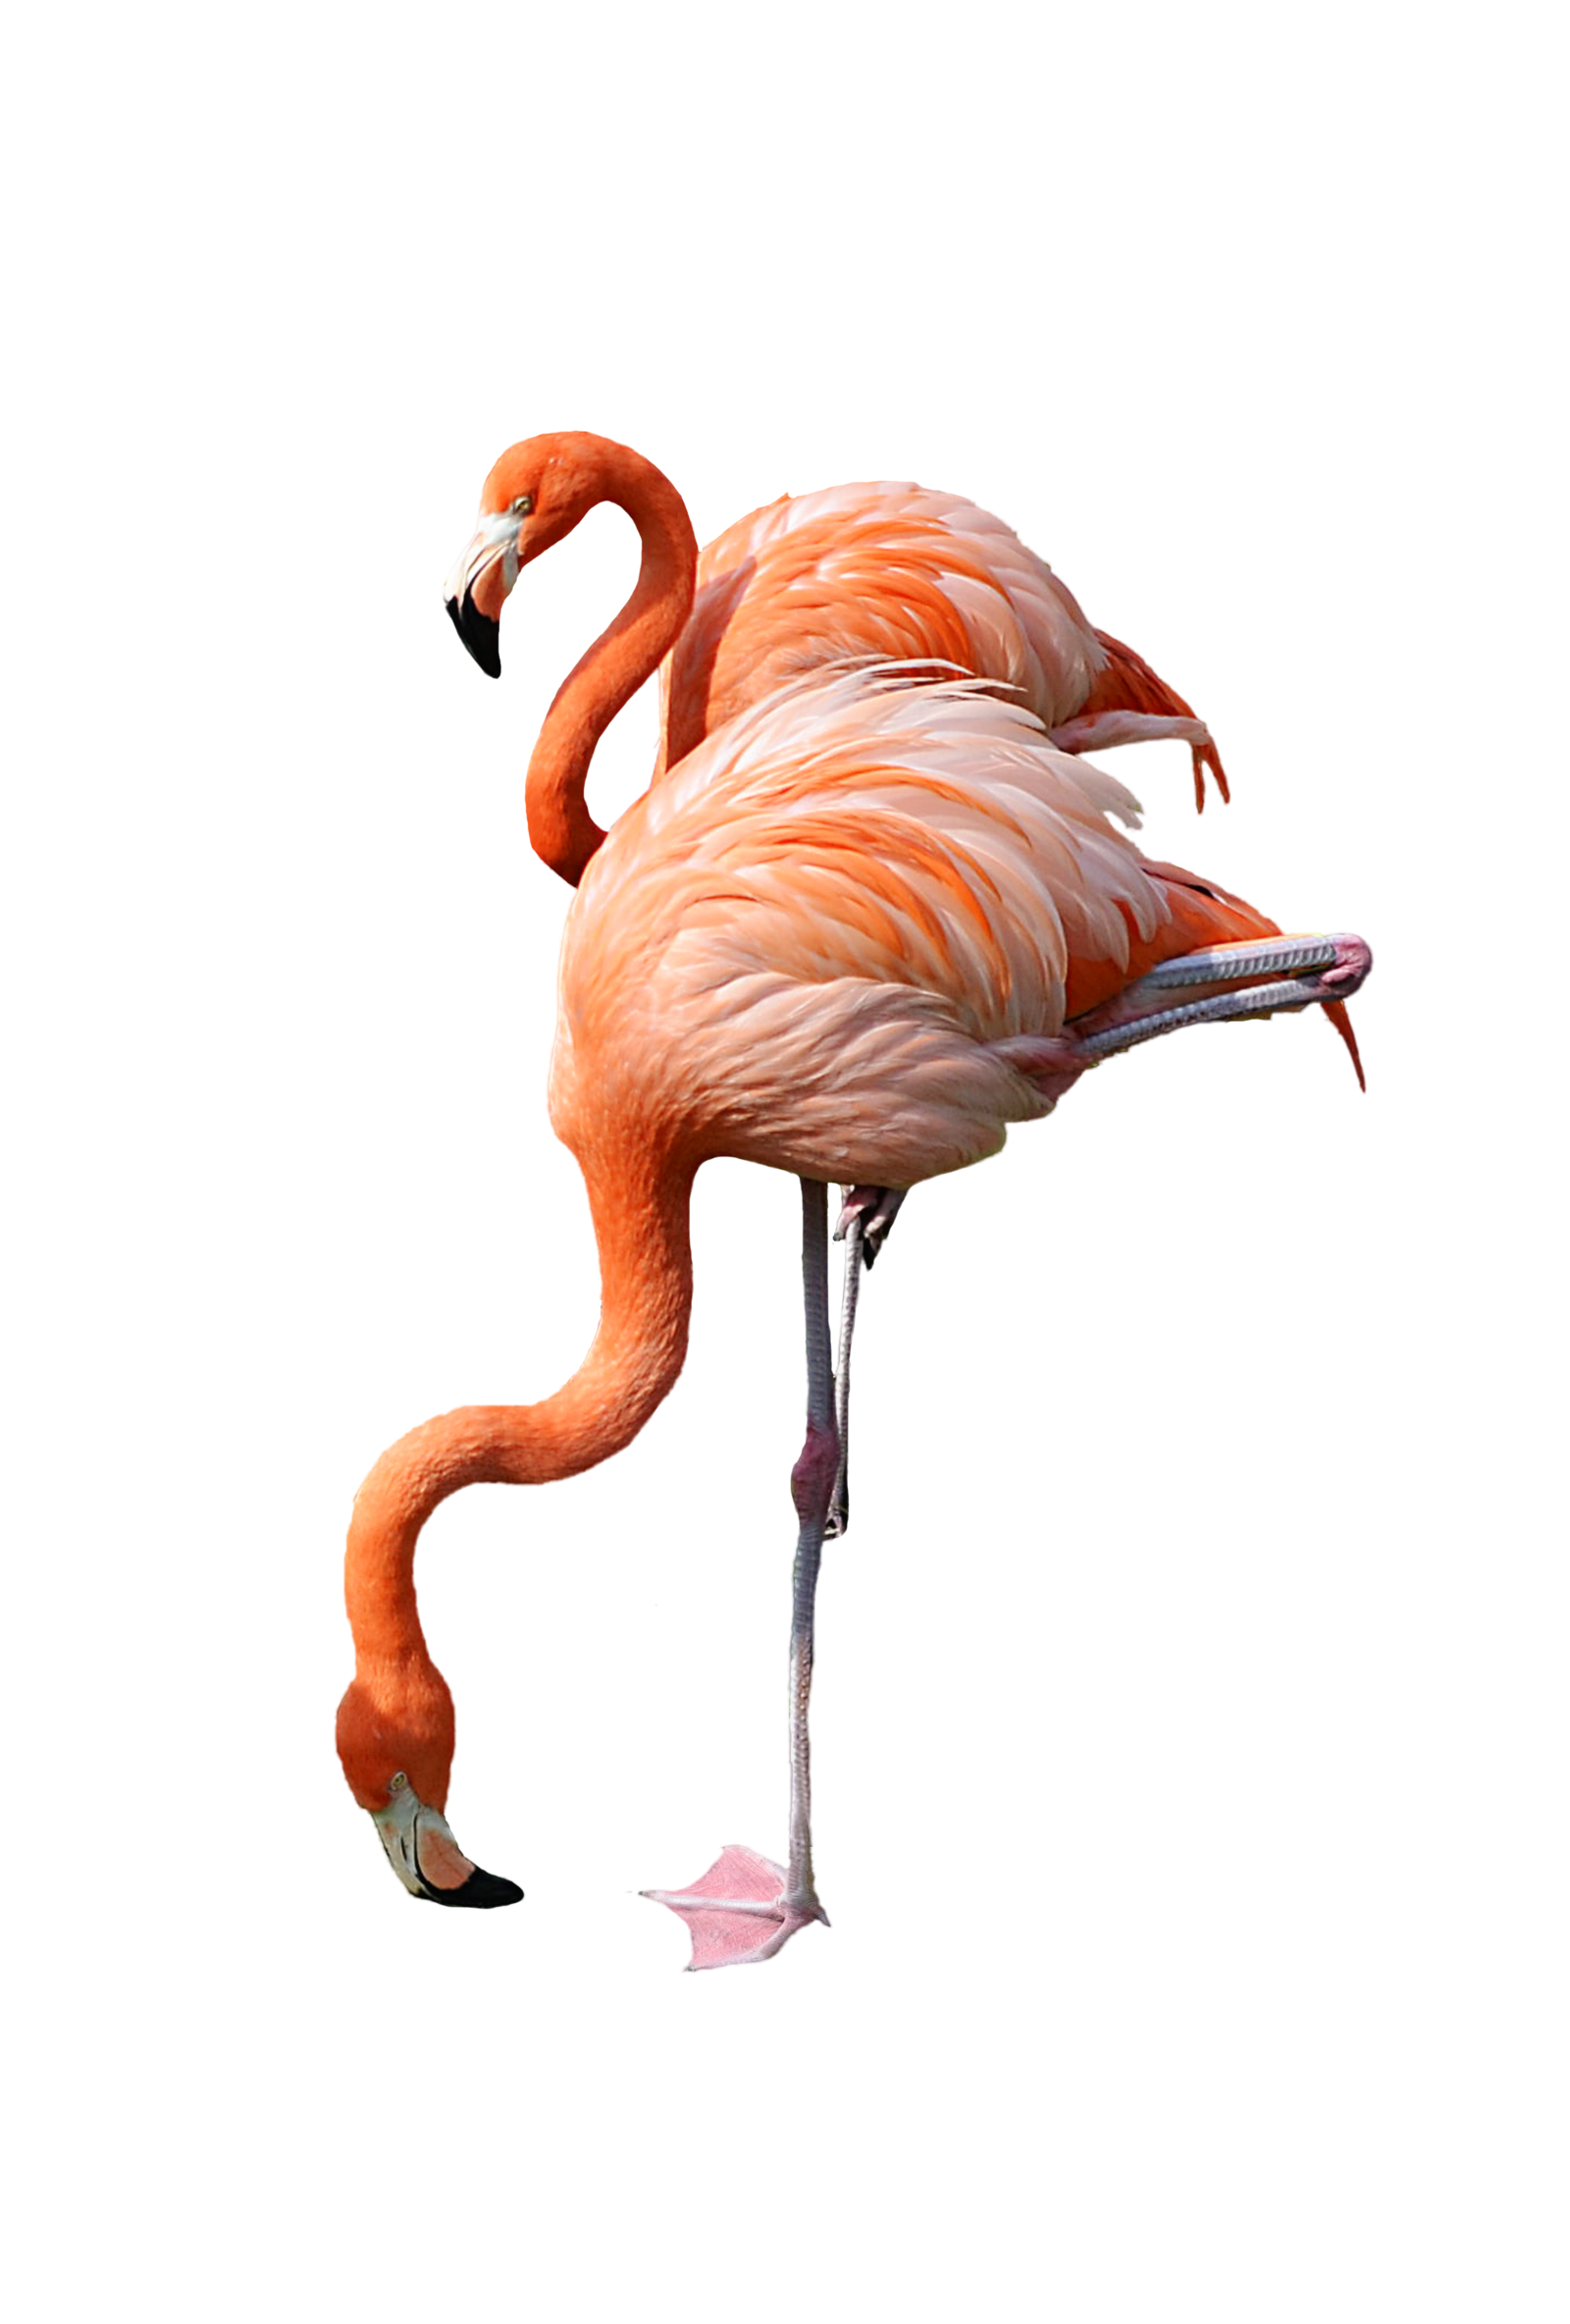 2 Standing Pink Flamingo Stock Photo 0440 PNG by annamae22 - Flamingo PNG